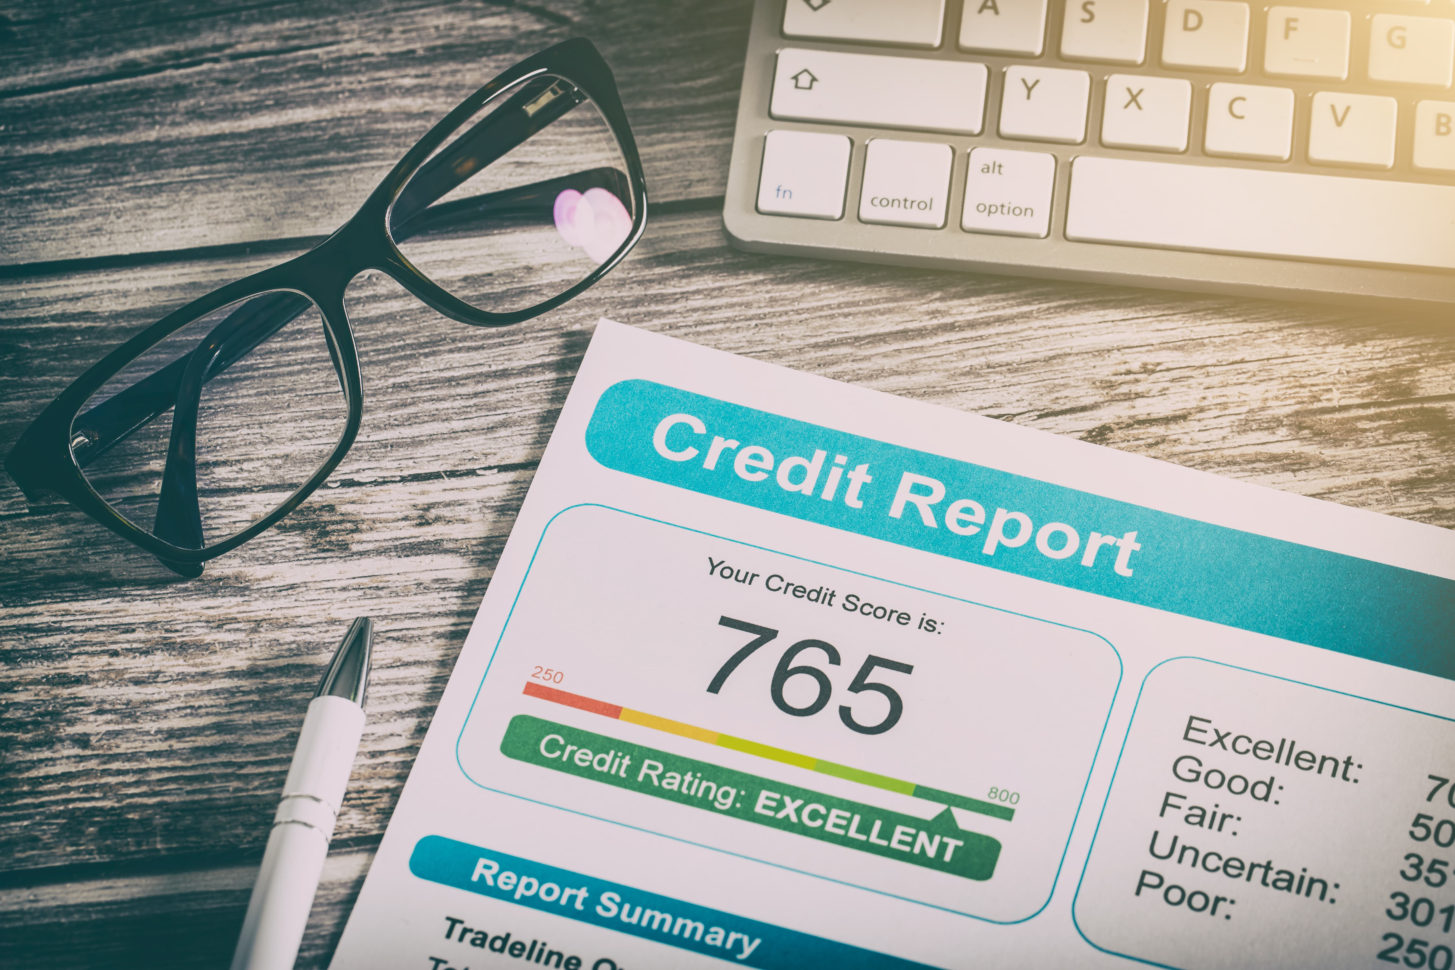 Improving Your Fico Credit Score Worksheet Answers